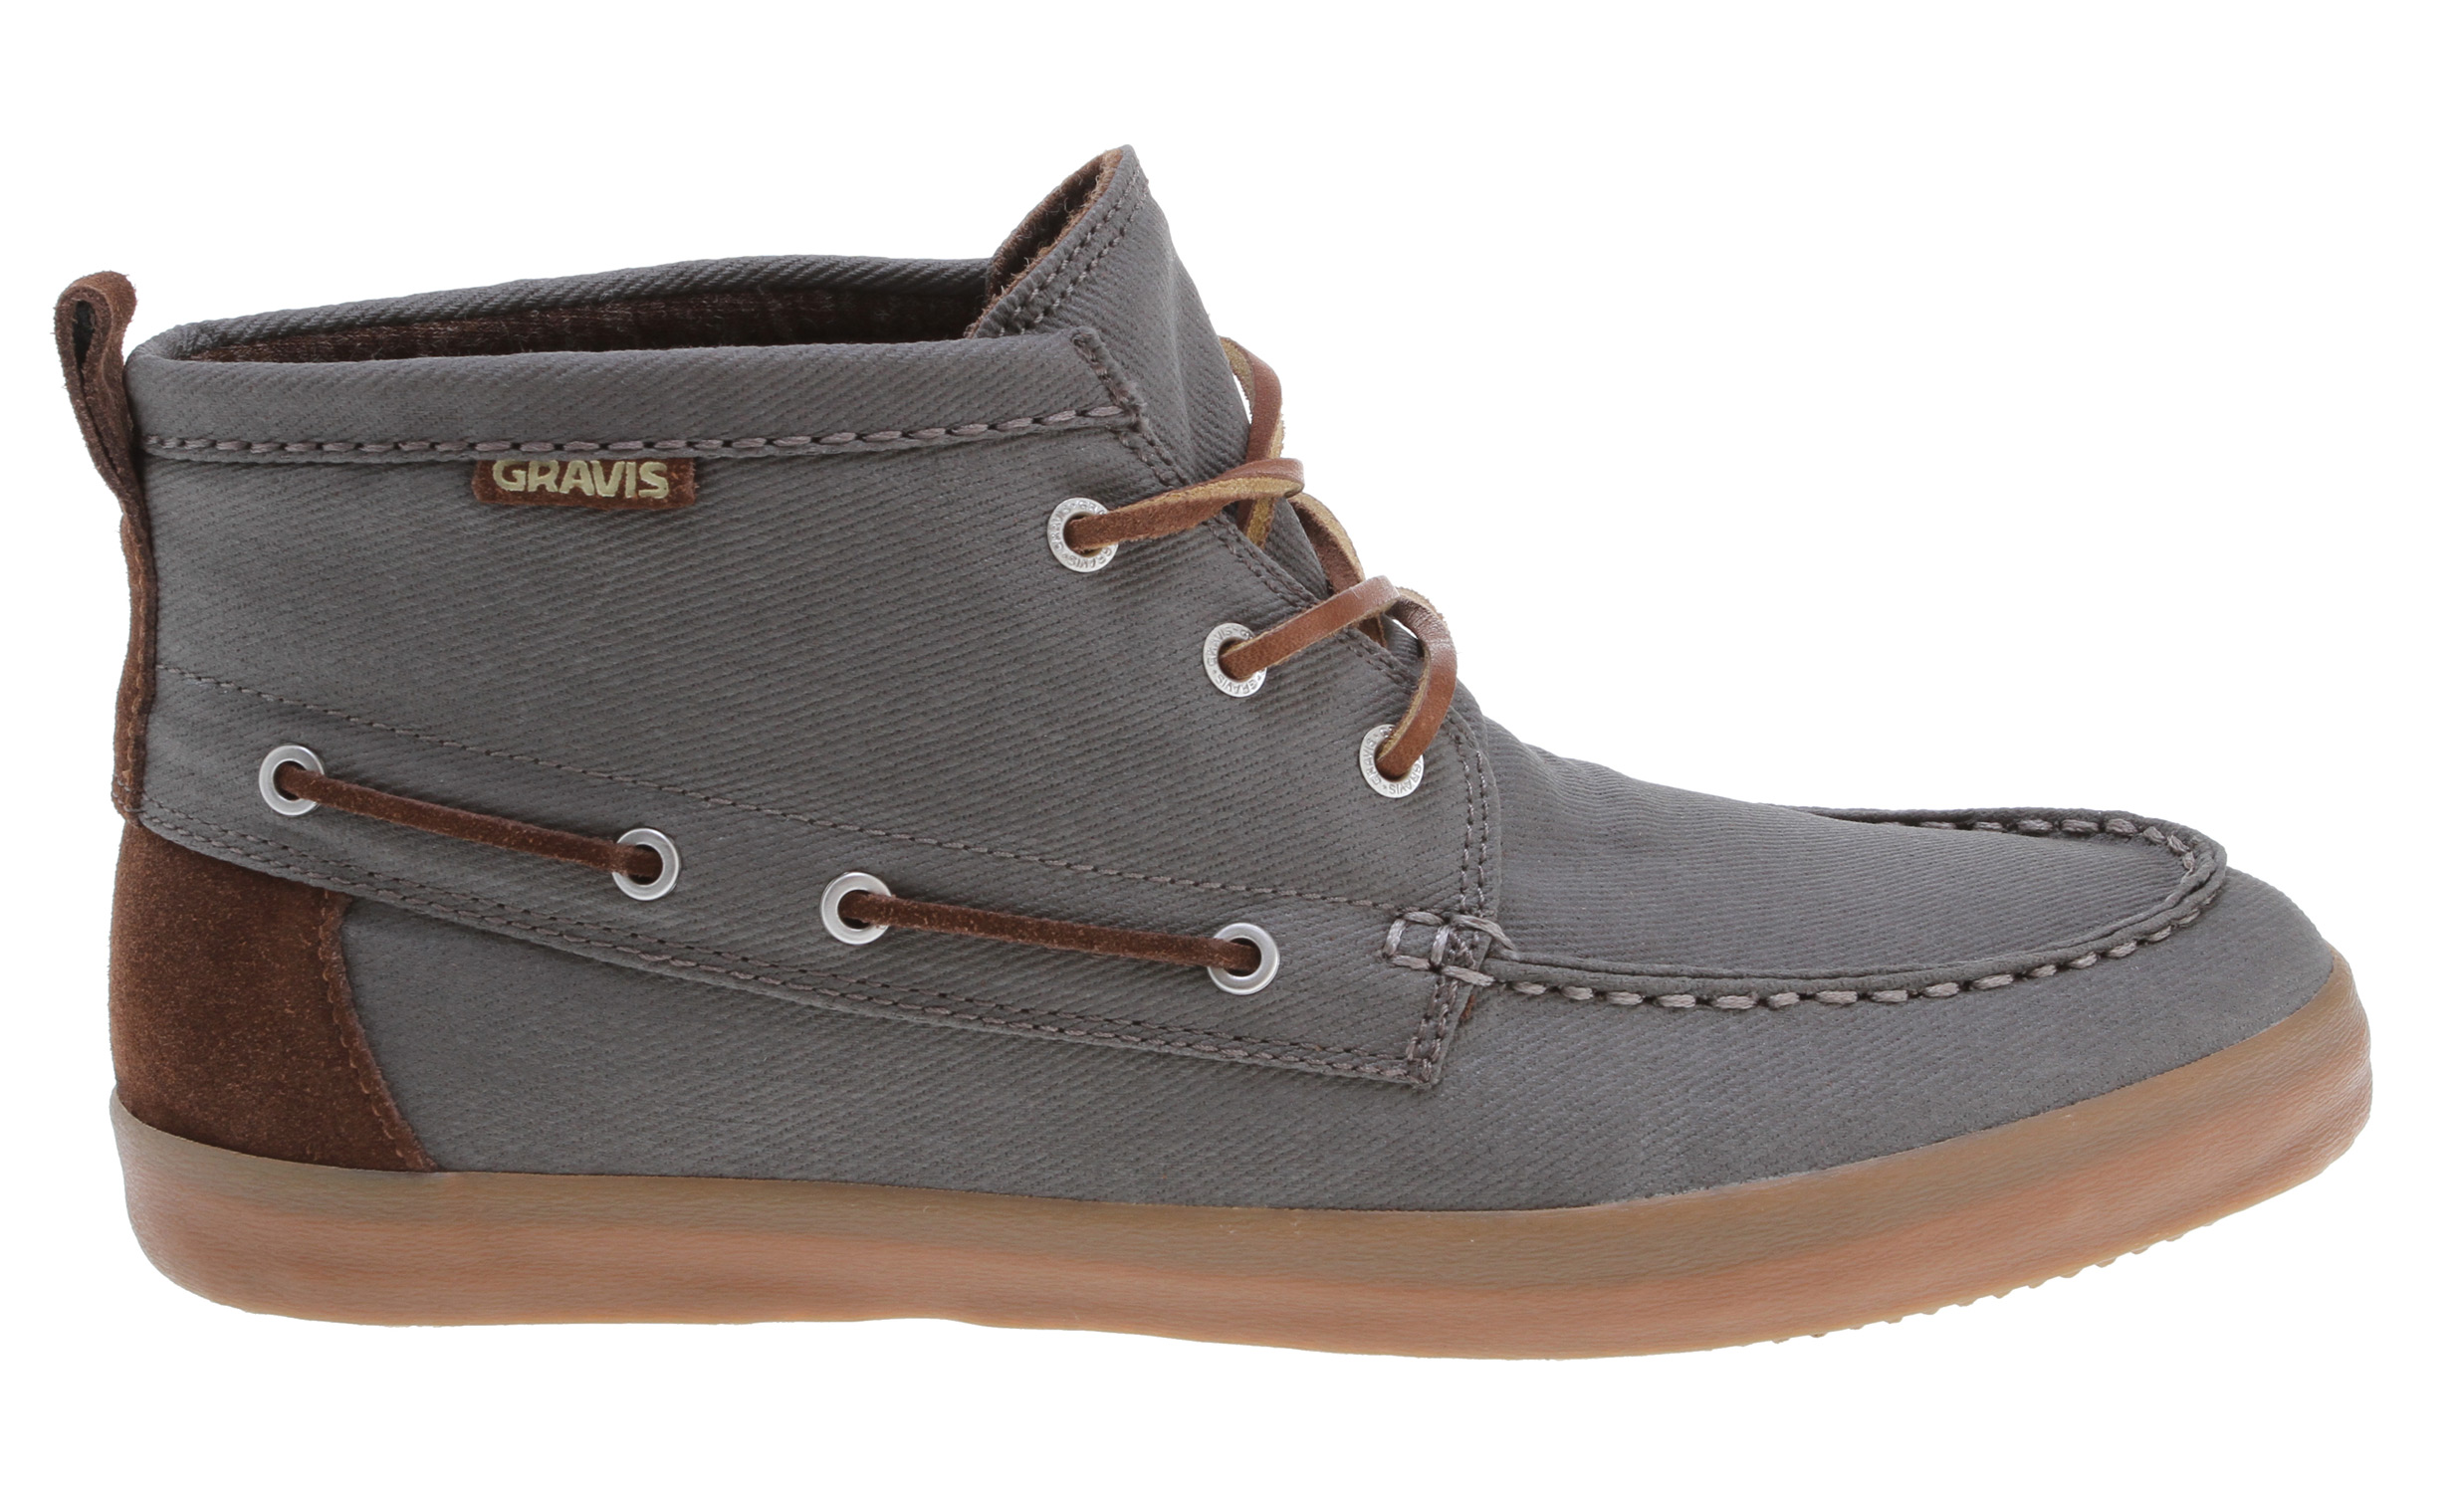 Key Features of the Gravis Yachtmaster Mid Shoes: Premium suede and textile uppers Hand sewn construction Round cotton laces Custom gravis eyelets Leather lace detail around the collar Breathable mesh lining Latex with rubber heel wedge footbed Texture calendar outsole - $68.95